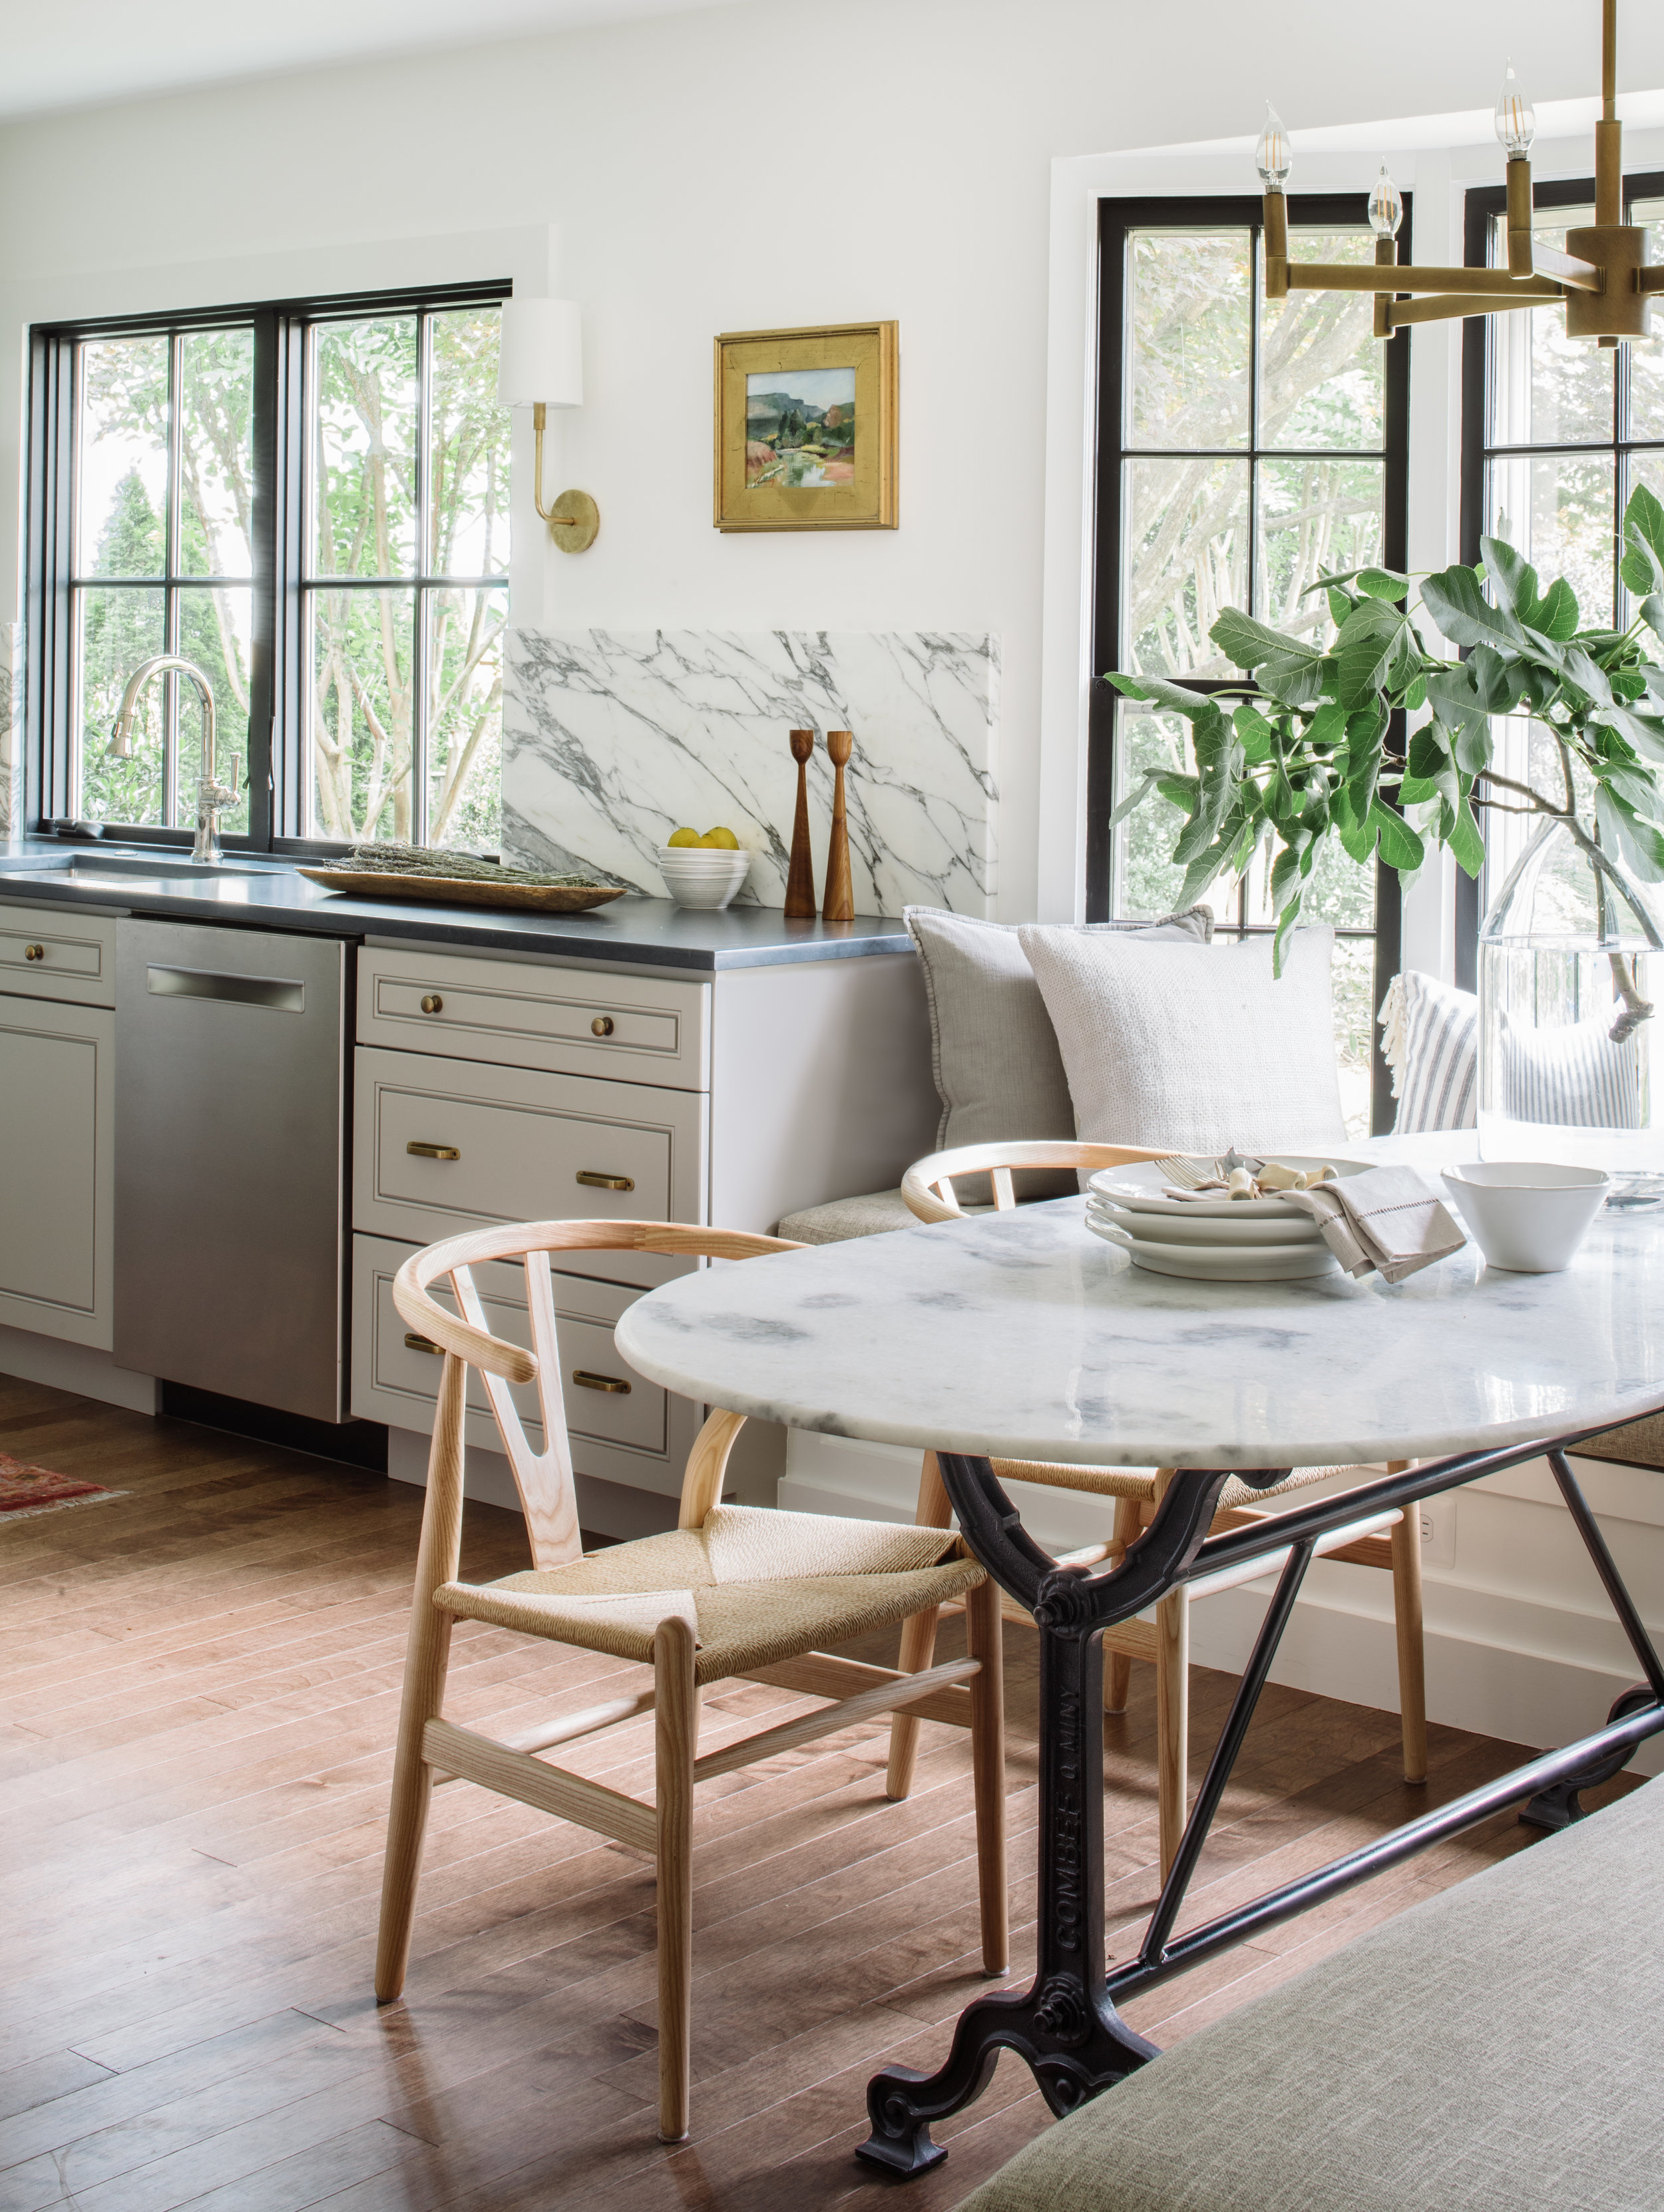 Kitchen by Alison Giese Interiors